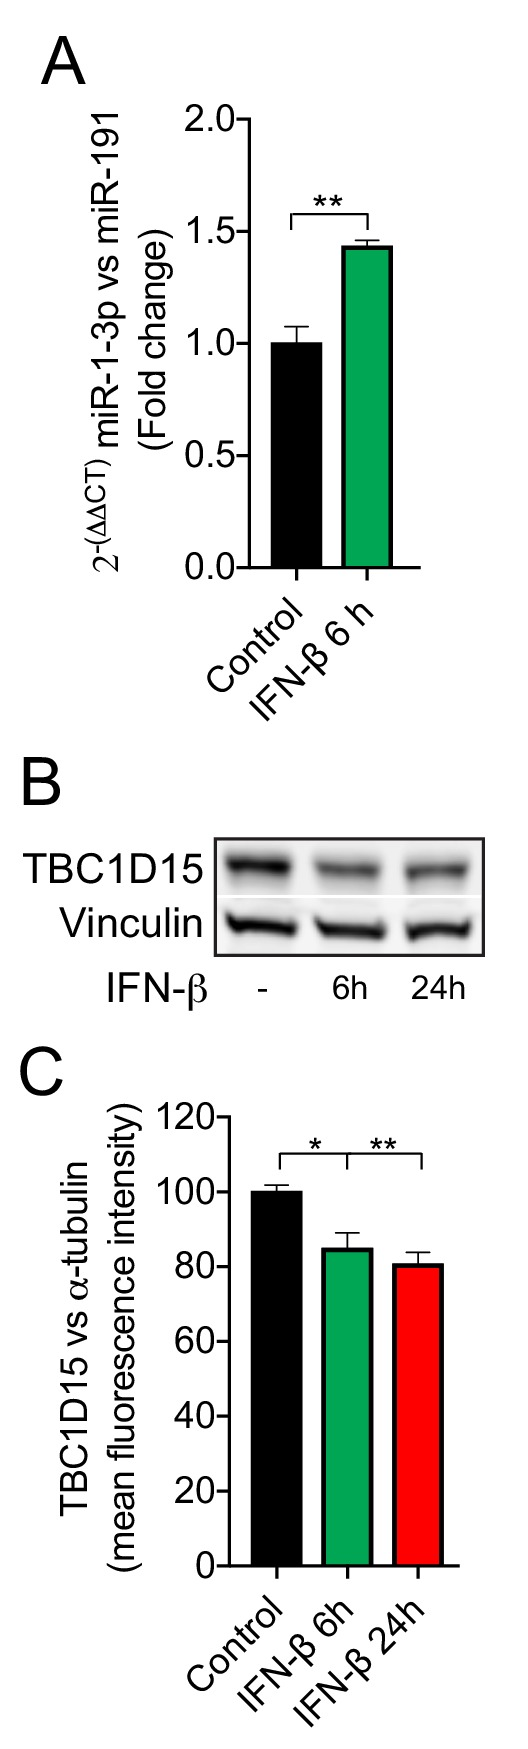 IFN-β regulates miR-1 and TBC1D15 expression in HeLa cells. ( A ) RT-PCR of miR-1–3 p normalized to miR-191 from HeLa cells treated with recombinant human IFN-β (1000 U/ml) for 6 hr (n=3).**p